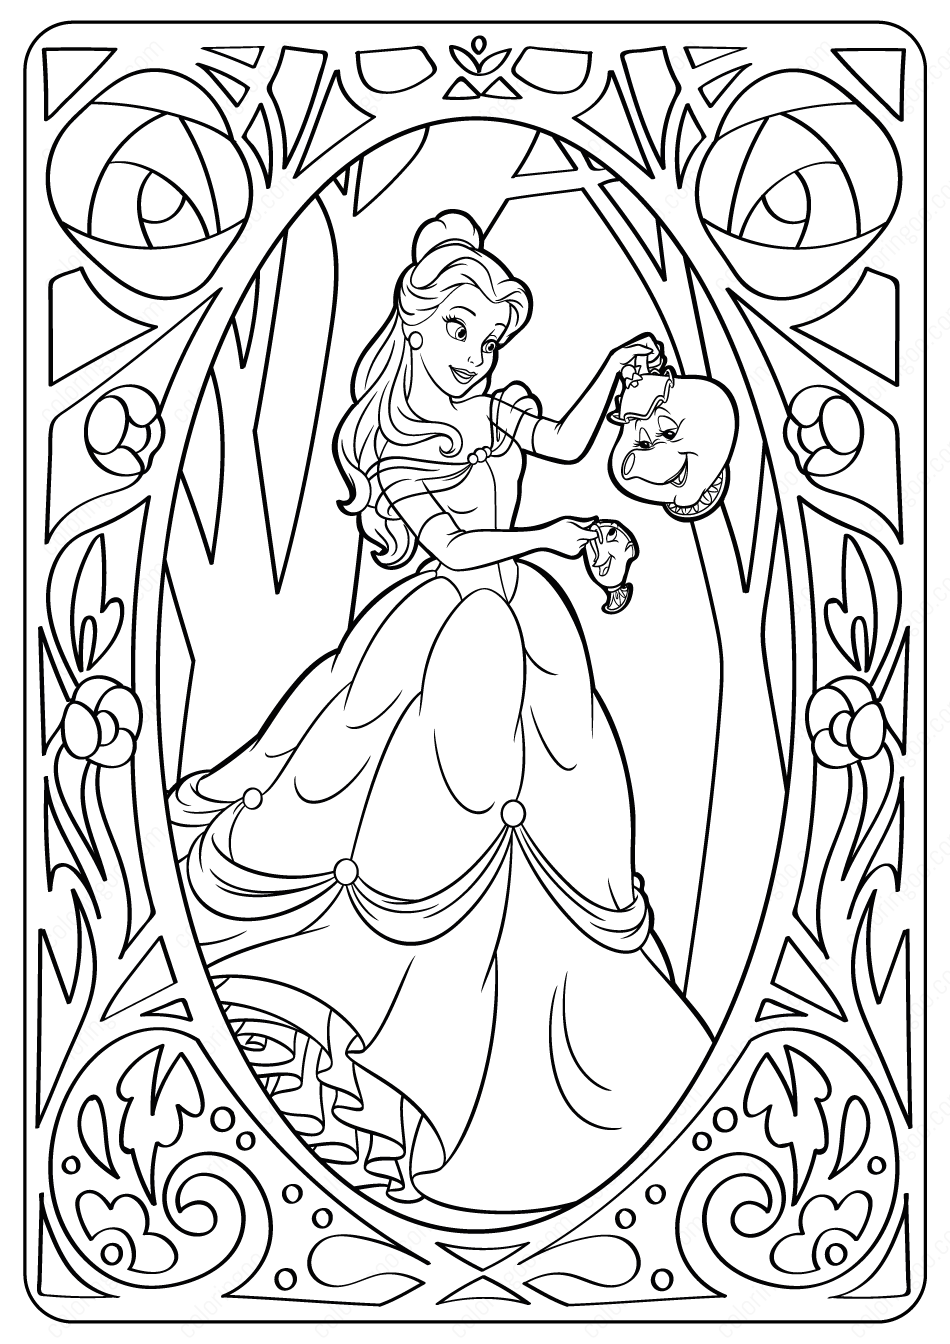 Disney Belle Pdf Coloring Pages In 2020 Disney Princess Coloring Pages Disney Princess Colors Princess Coloring Pages